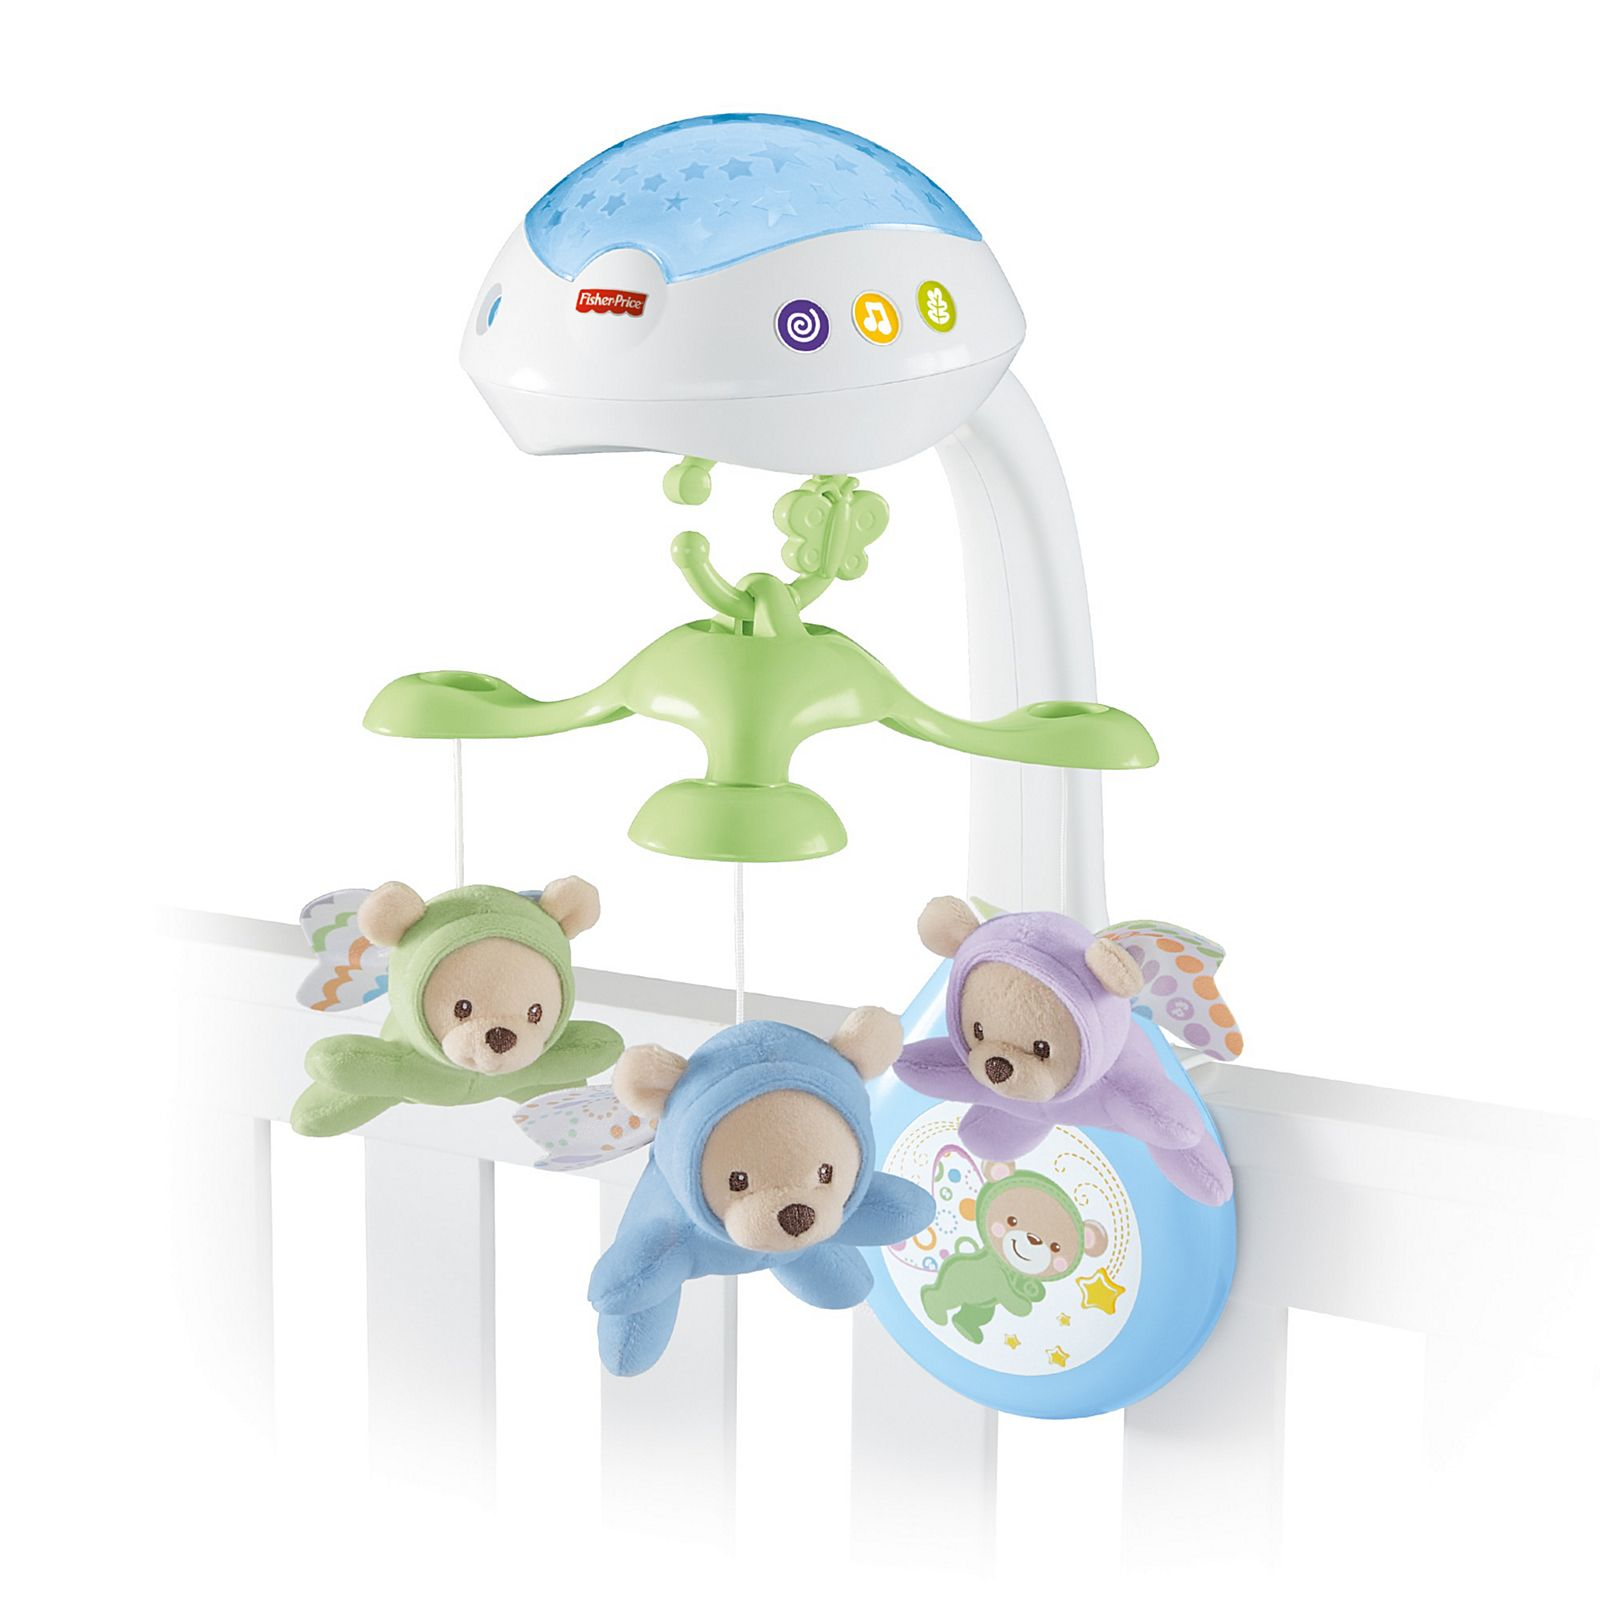 6121c3e84 Butterfly Dreams™ 3-in-1 Projection Mobile